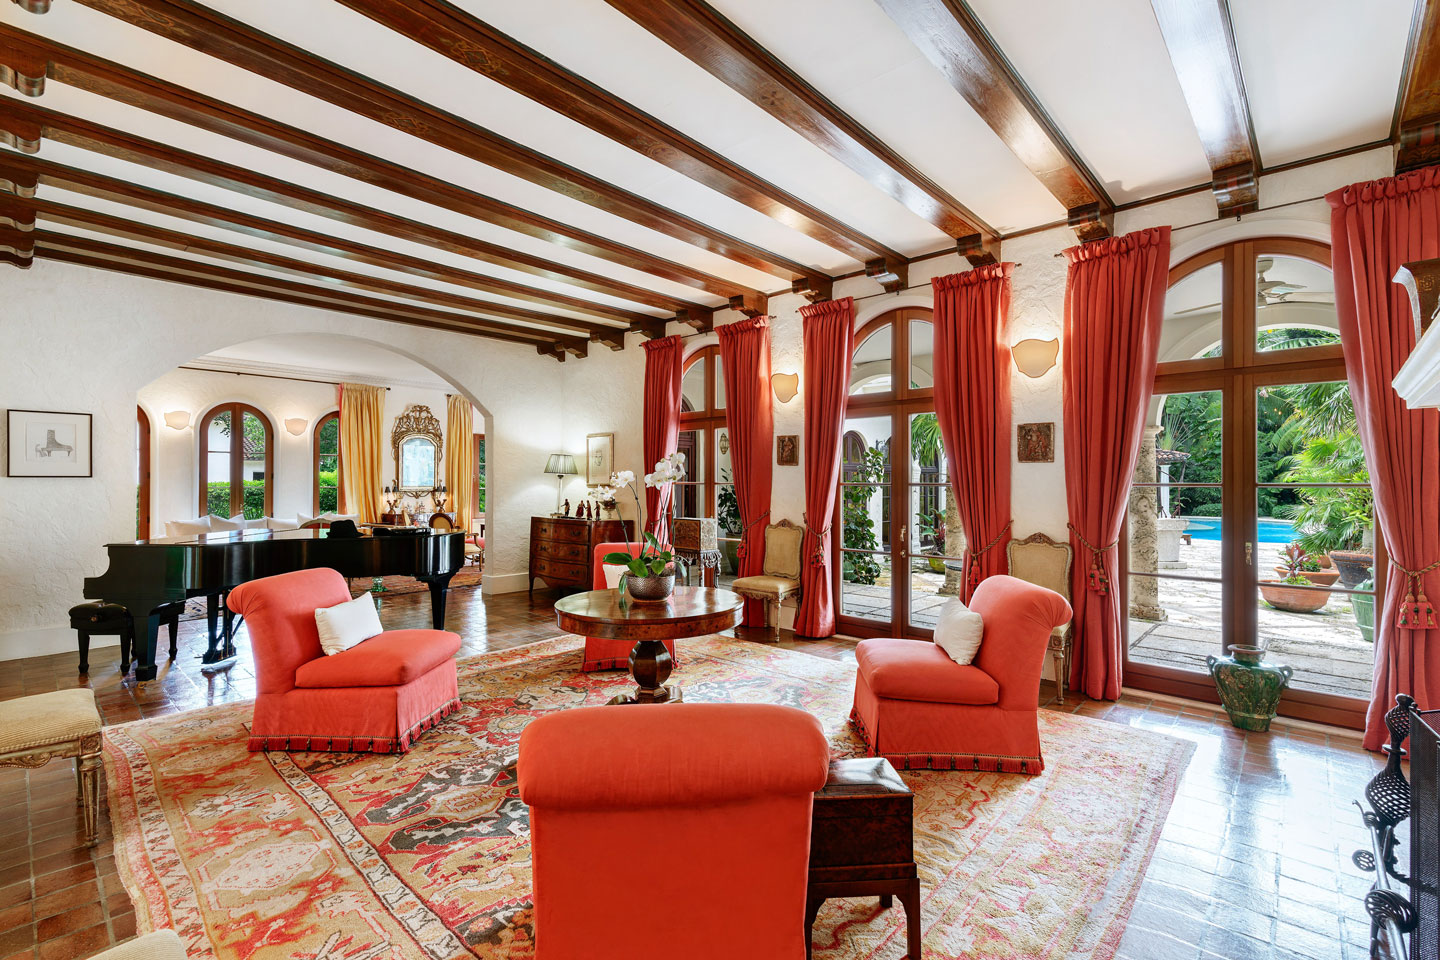 3725 Leafy Way, Coconut Grove, Miami, Florida, USA | A Living Room | Listed by Dennis Carvajal, Real Estate Agent, ONE Sotheby's International Realty | Finest Residences